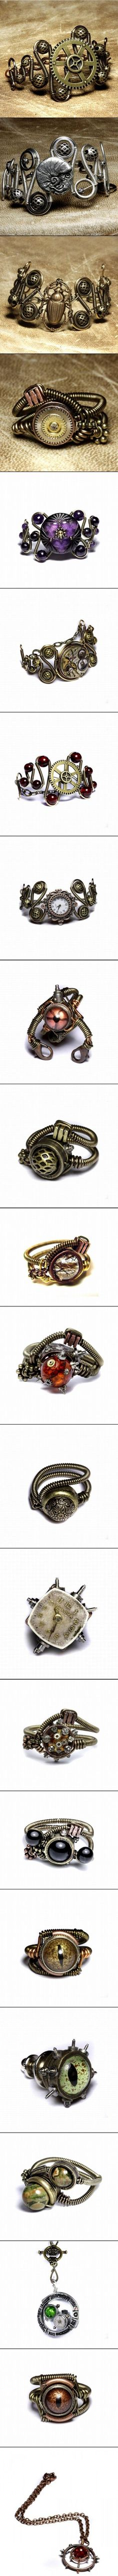 steampunk jewelry diy